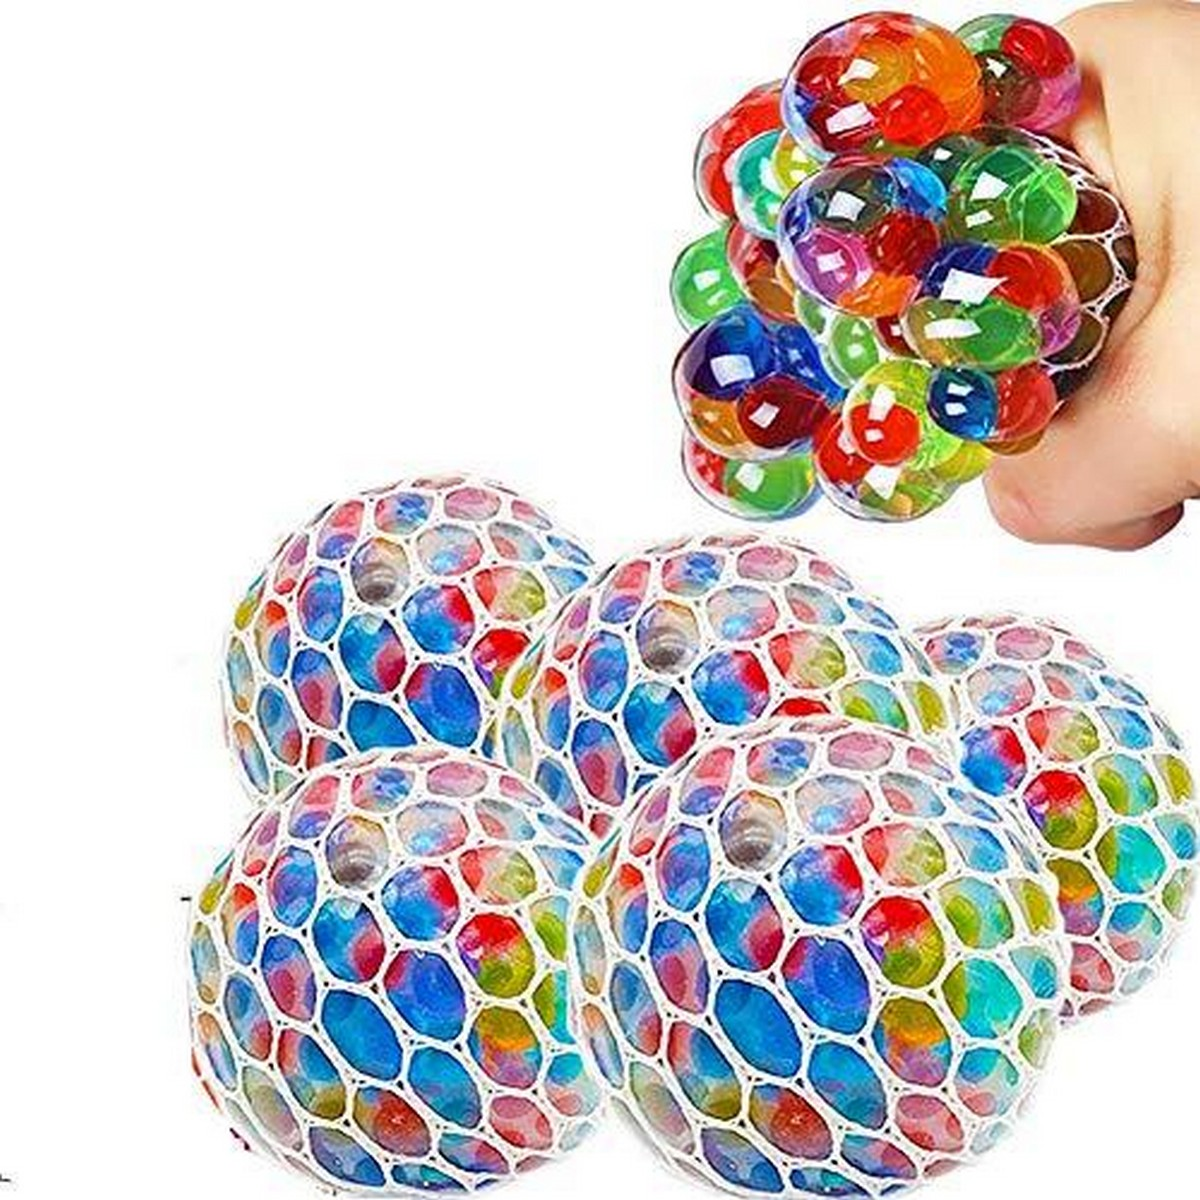 Magic Colour Changeable Grape Mesh Squish Ball Stress Release Playing Toy